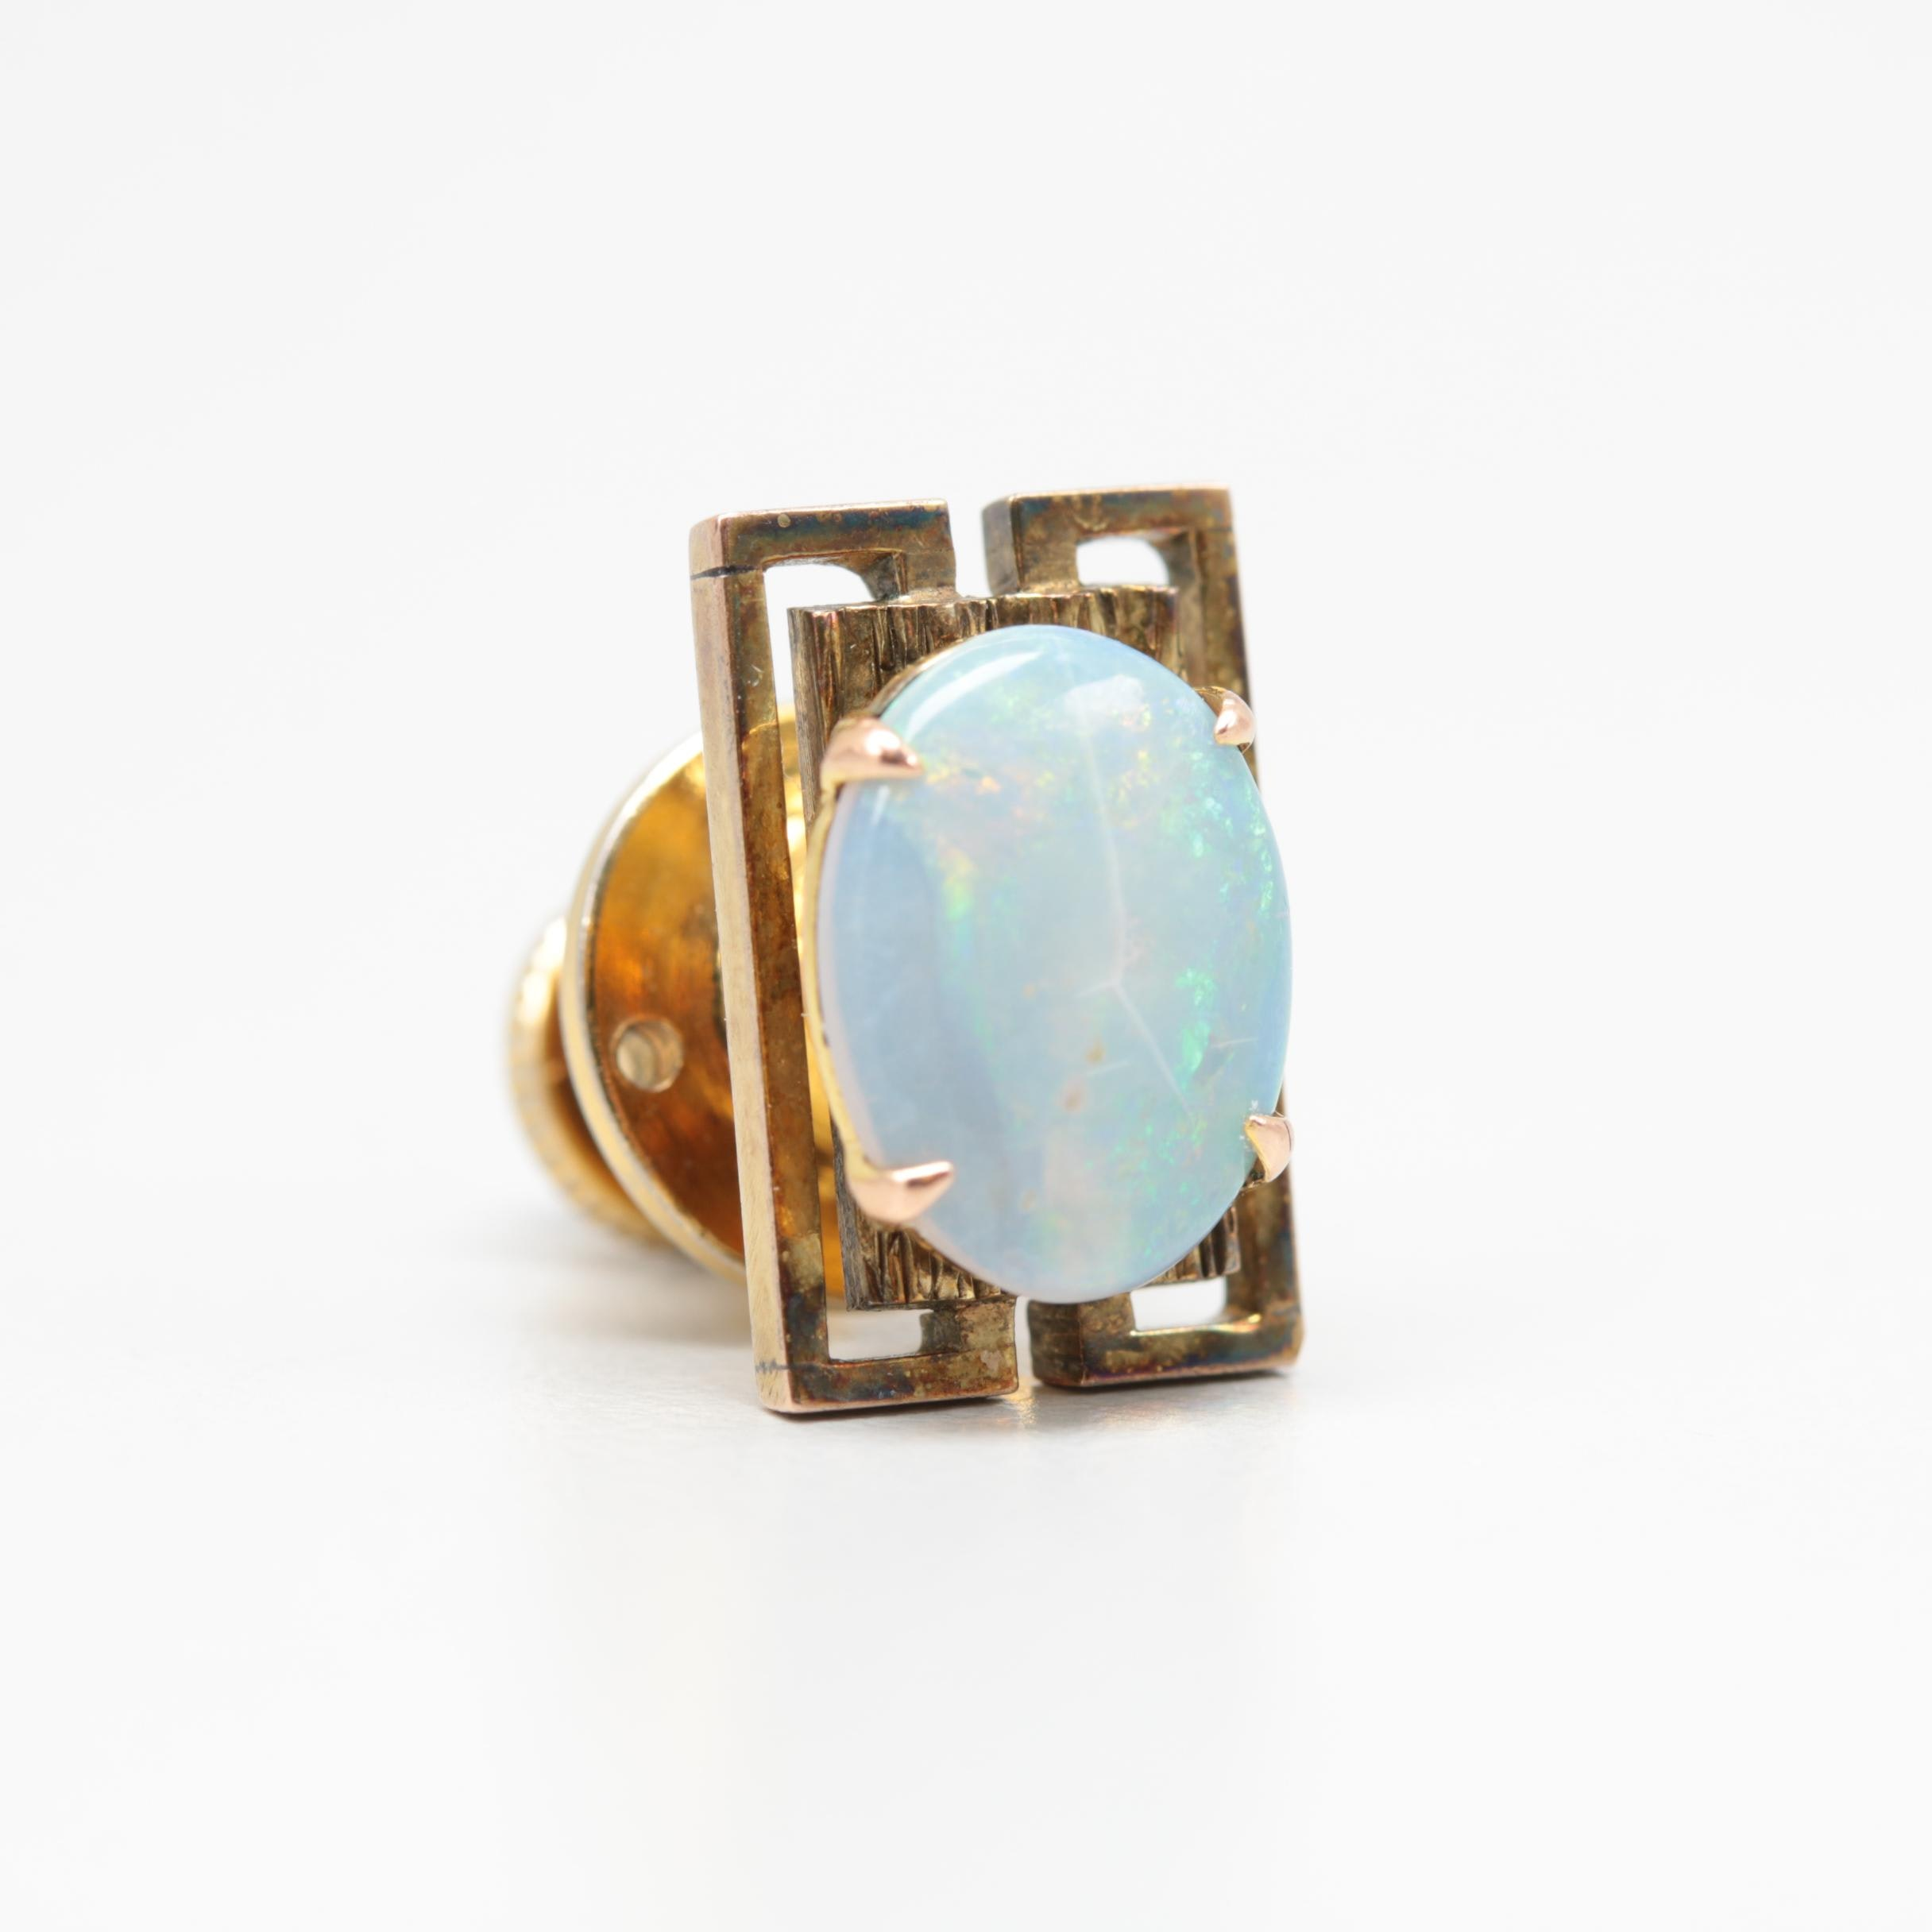 10K Yellow Gold Opal Tie Tack